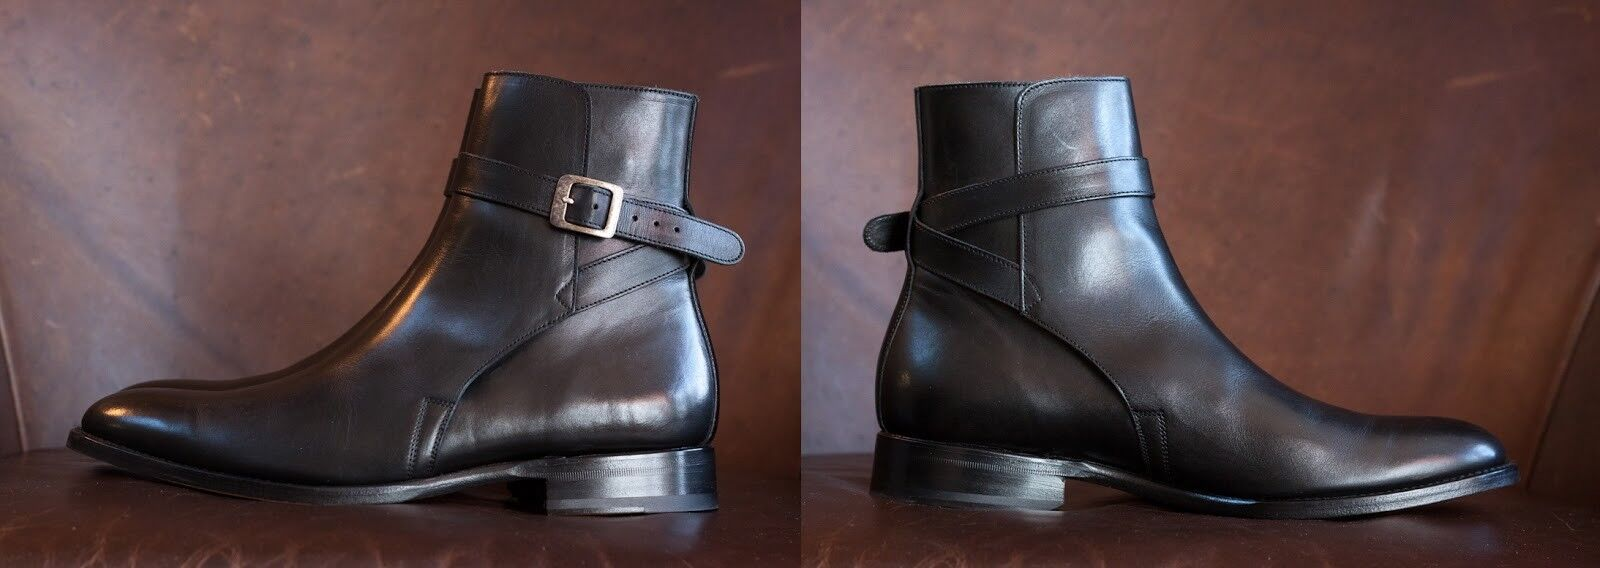 Handmade uomo Brown leather Jodhpurs, uomo dark brown ankle boots, uomo ankle boots Scarpe classiche da uomo